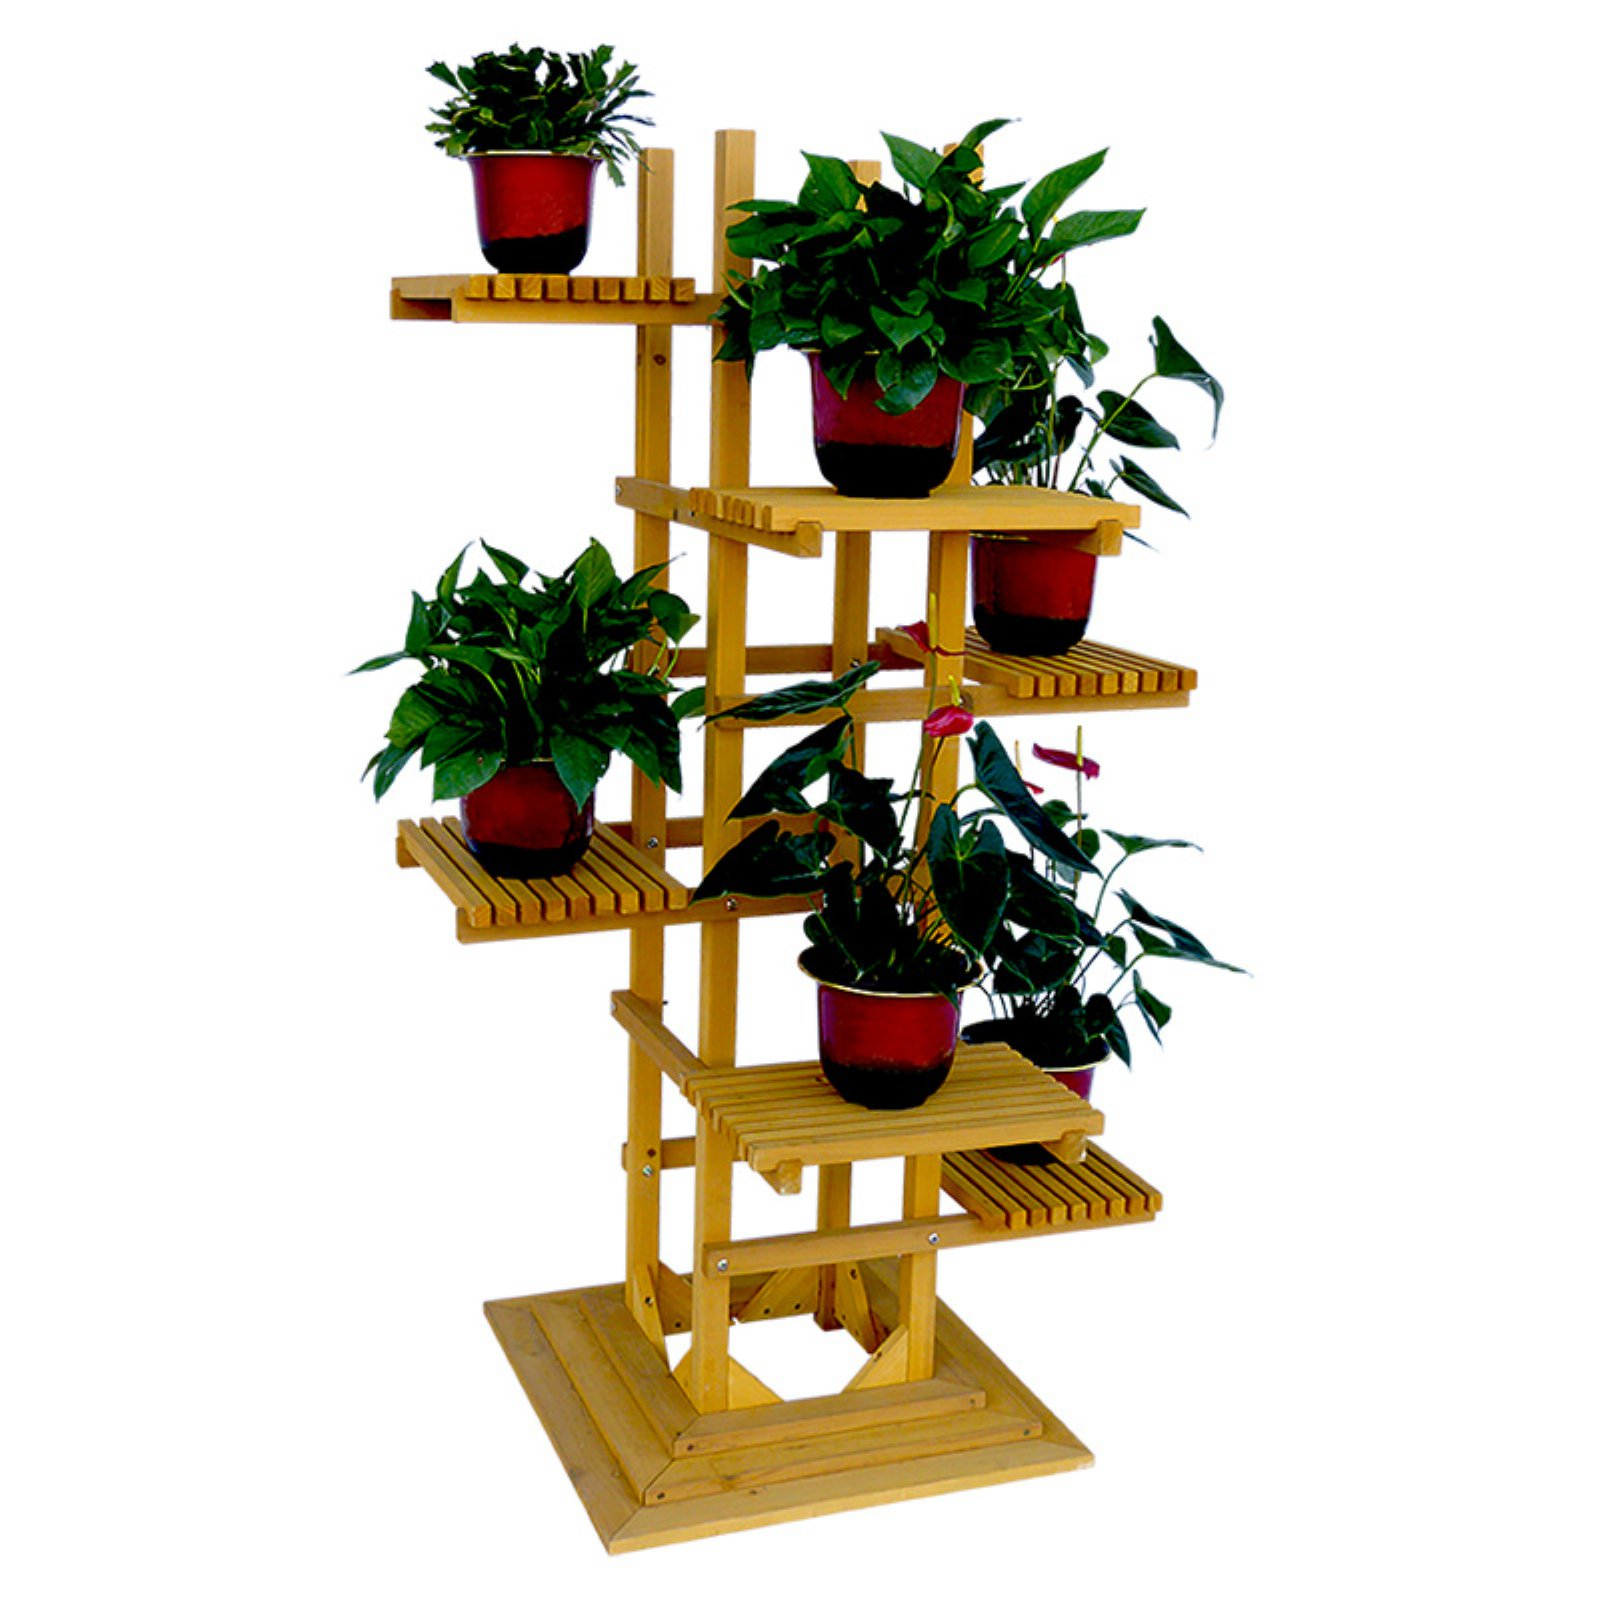 Leisure Season 6 Tier Pedestal Plant Stand by Leisure Season